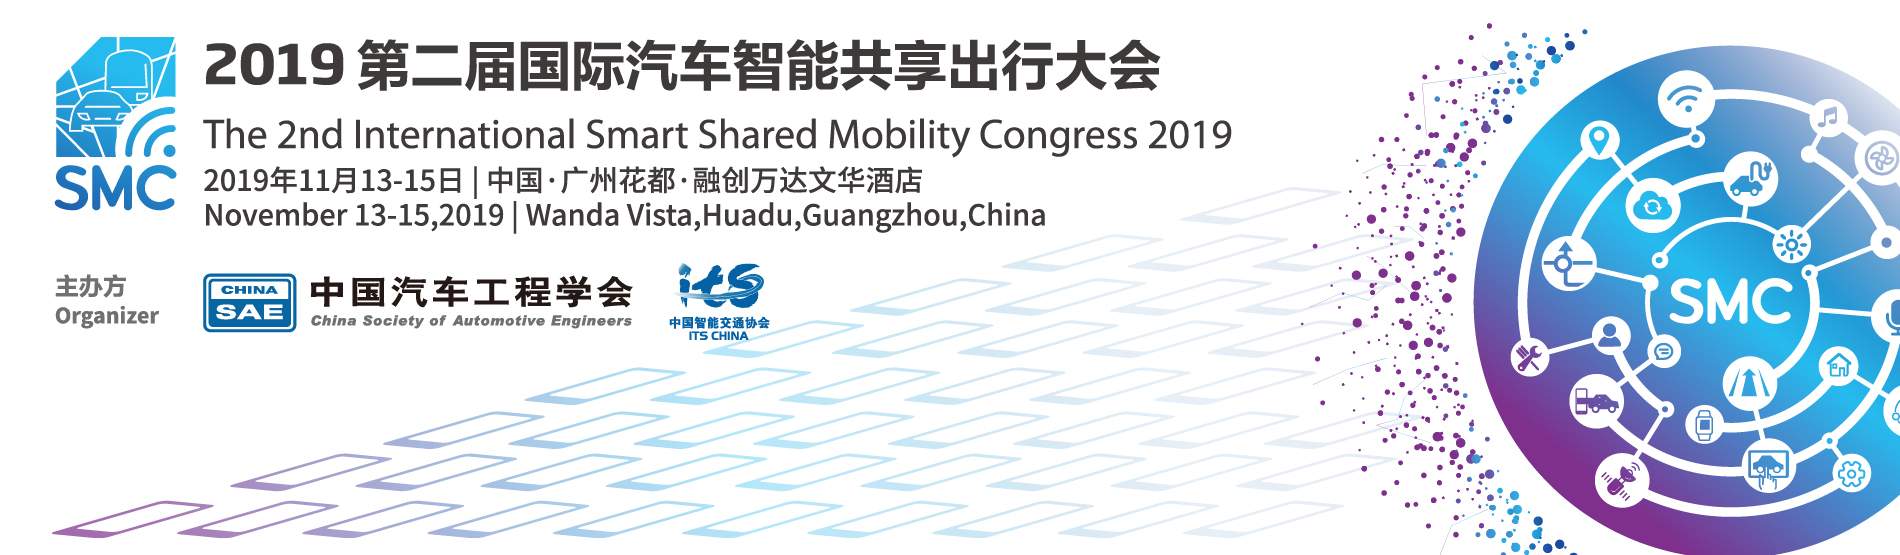 The 2nd International Smart Shard Mobility Congress 2019